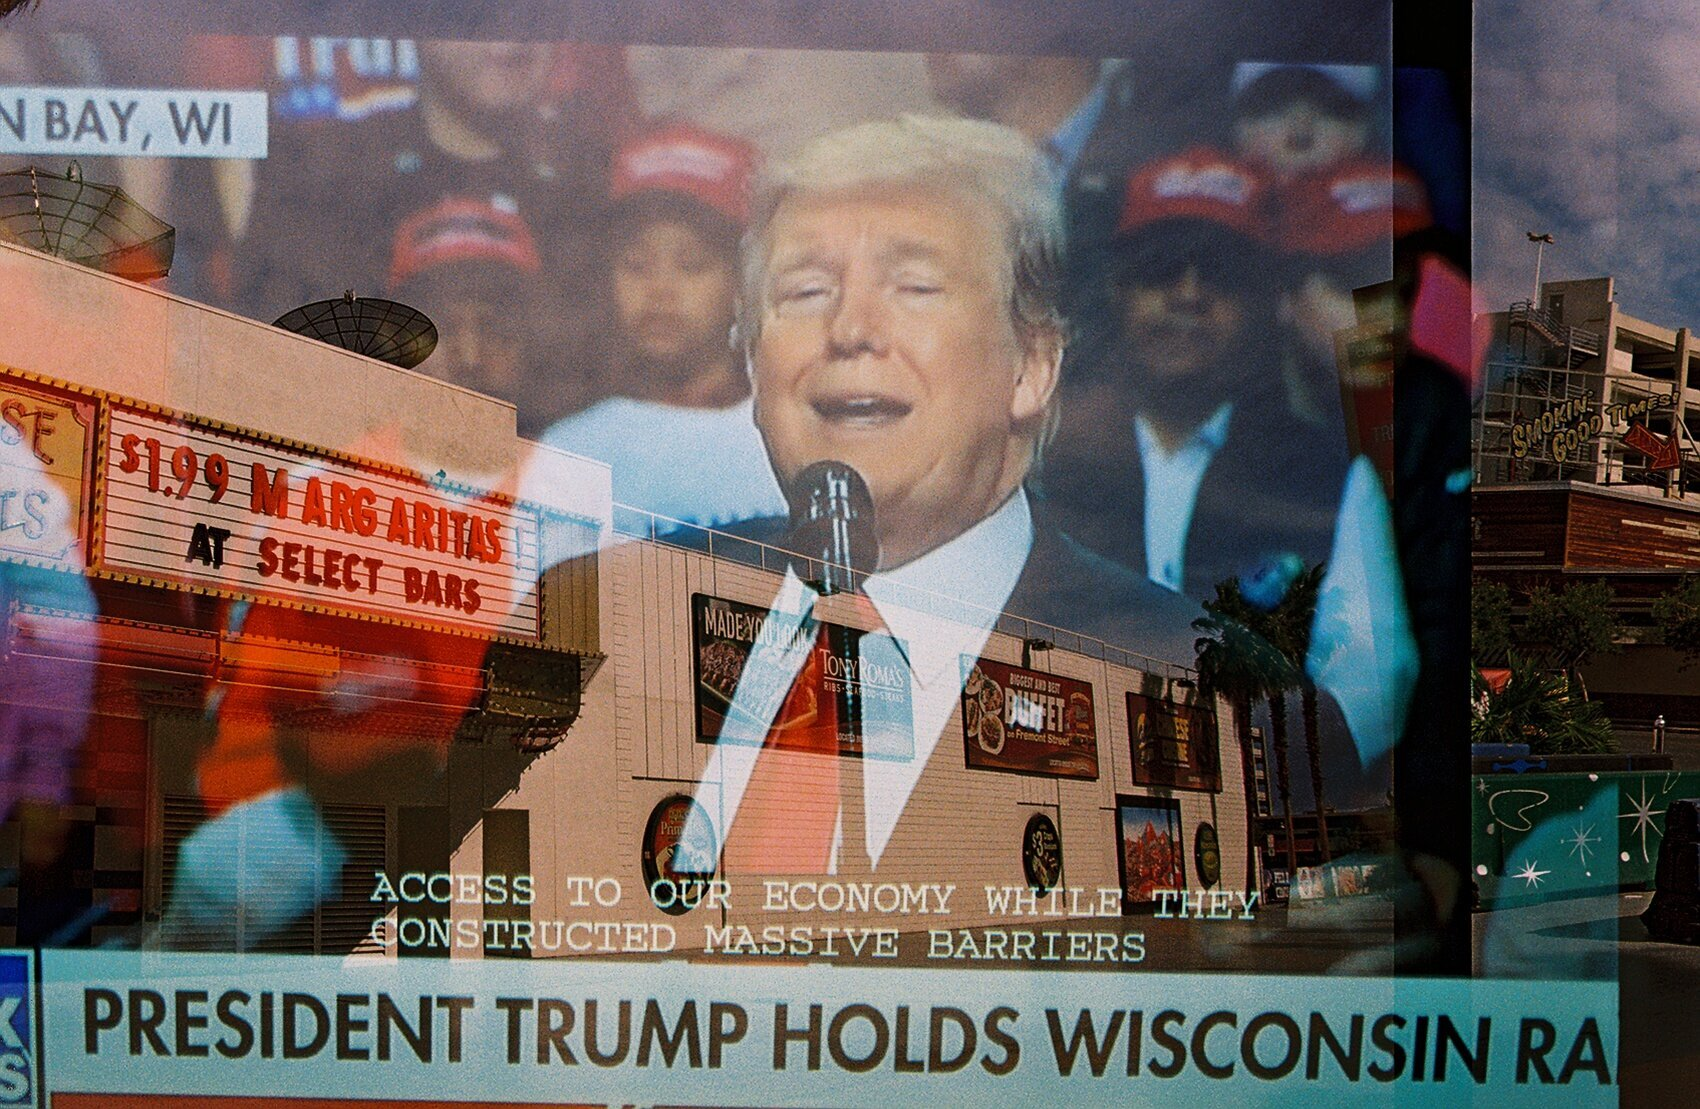 Trump+rally+double+exposure.jpeg